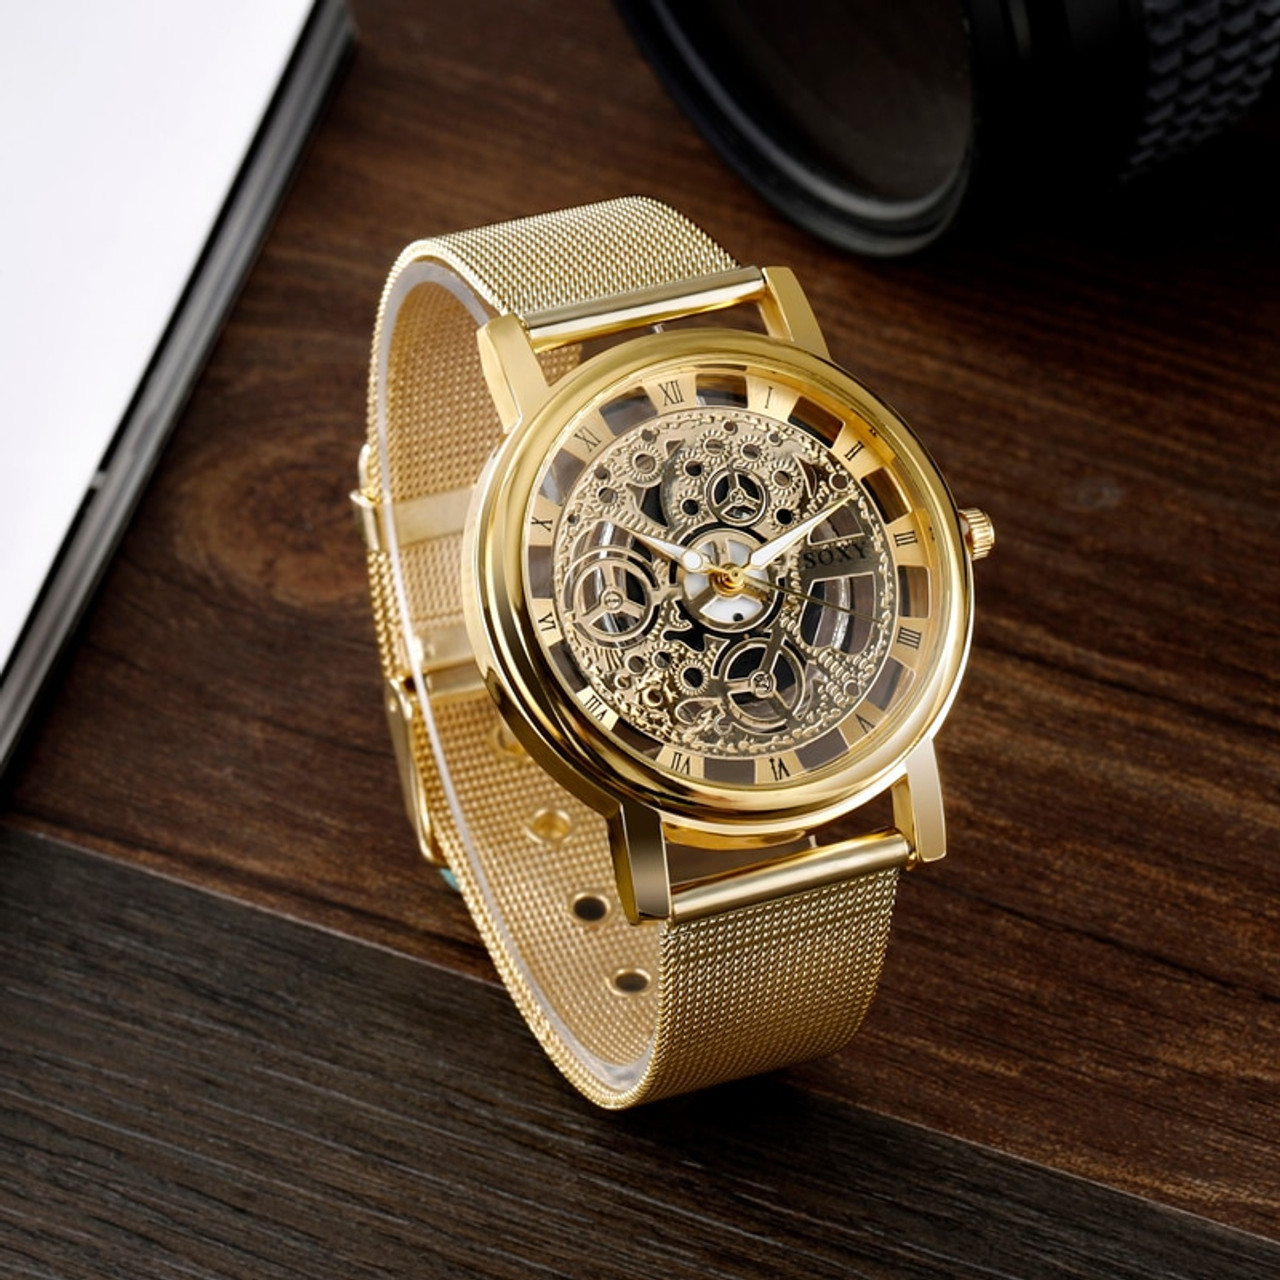 ea7f8e53c7a5 ... SOXY Luxury Skeleton Watches Men Watch Fashion Gold Watch Men Clock  Men s Watch relogio masculino reloj ...